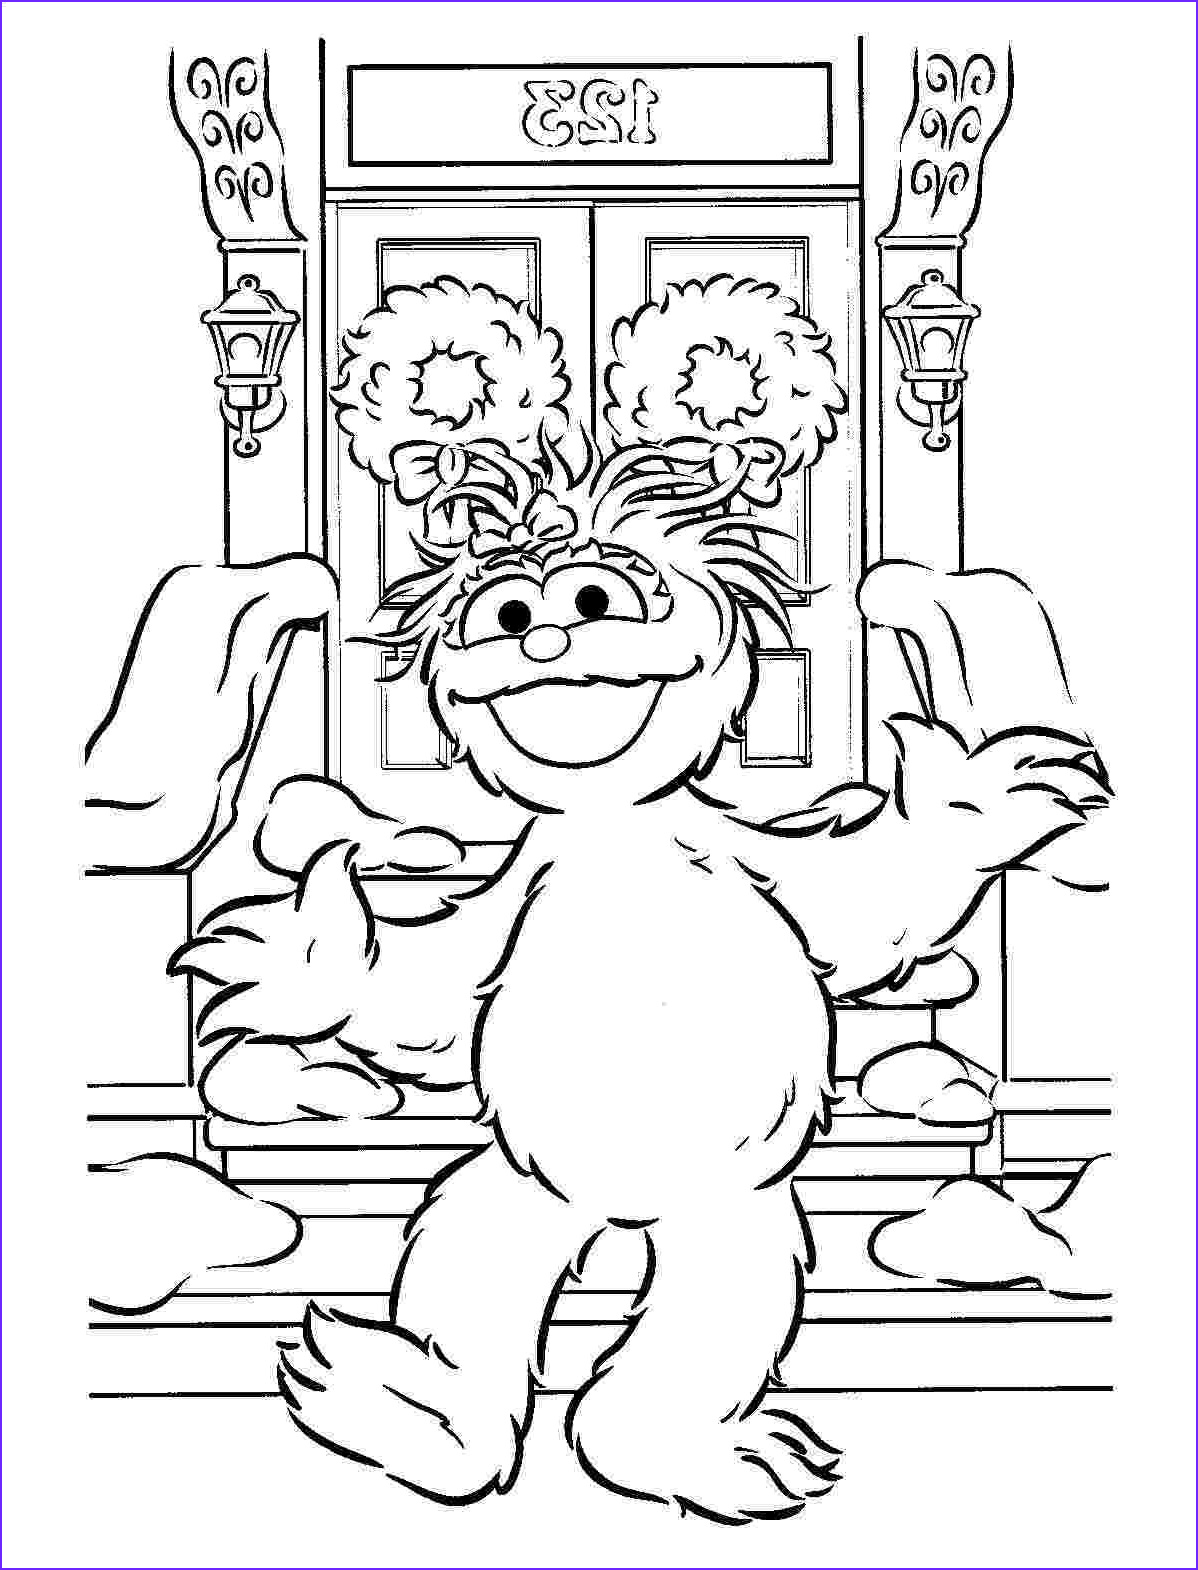 sesame street coloring pages free printable activities for kids christmas holiday 35